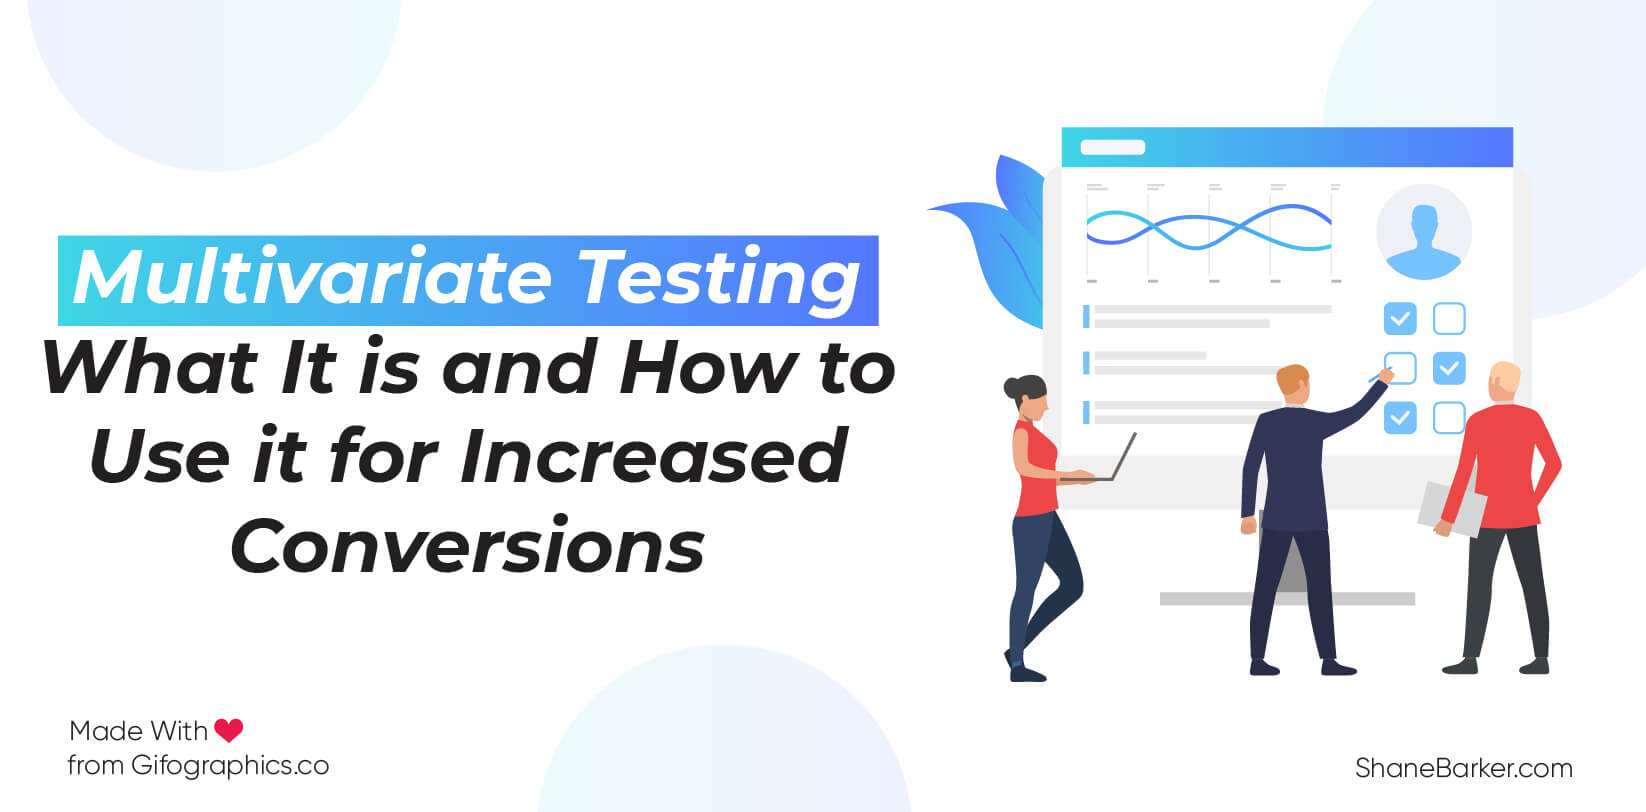 Multivariate Testing What It is and How to Use it for Increased Conversions